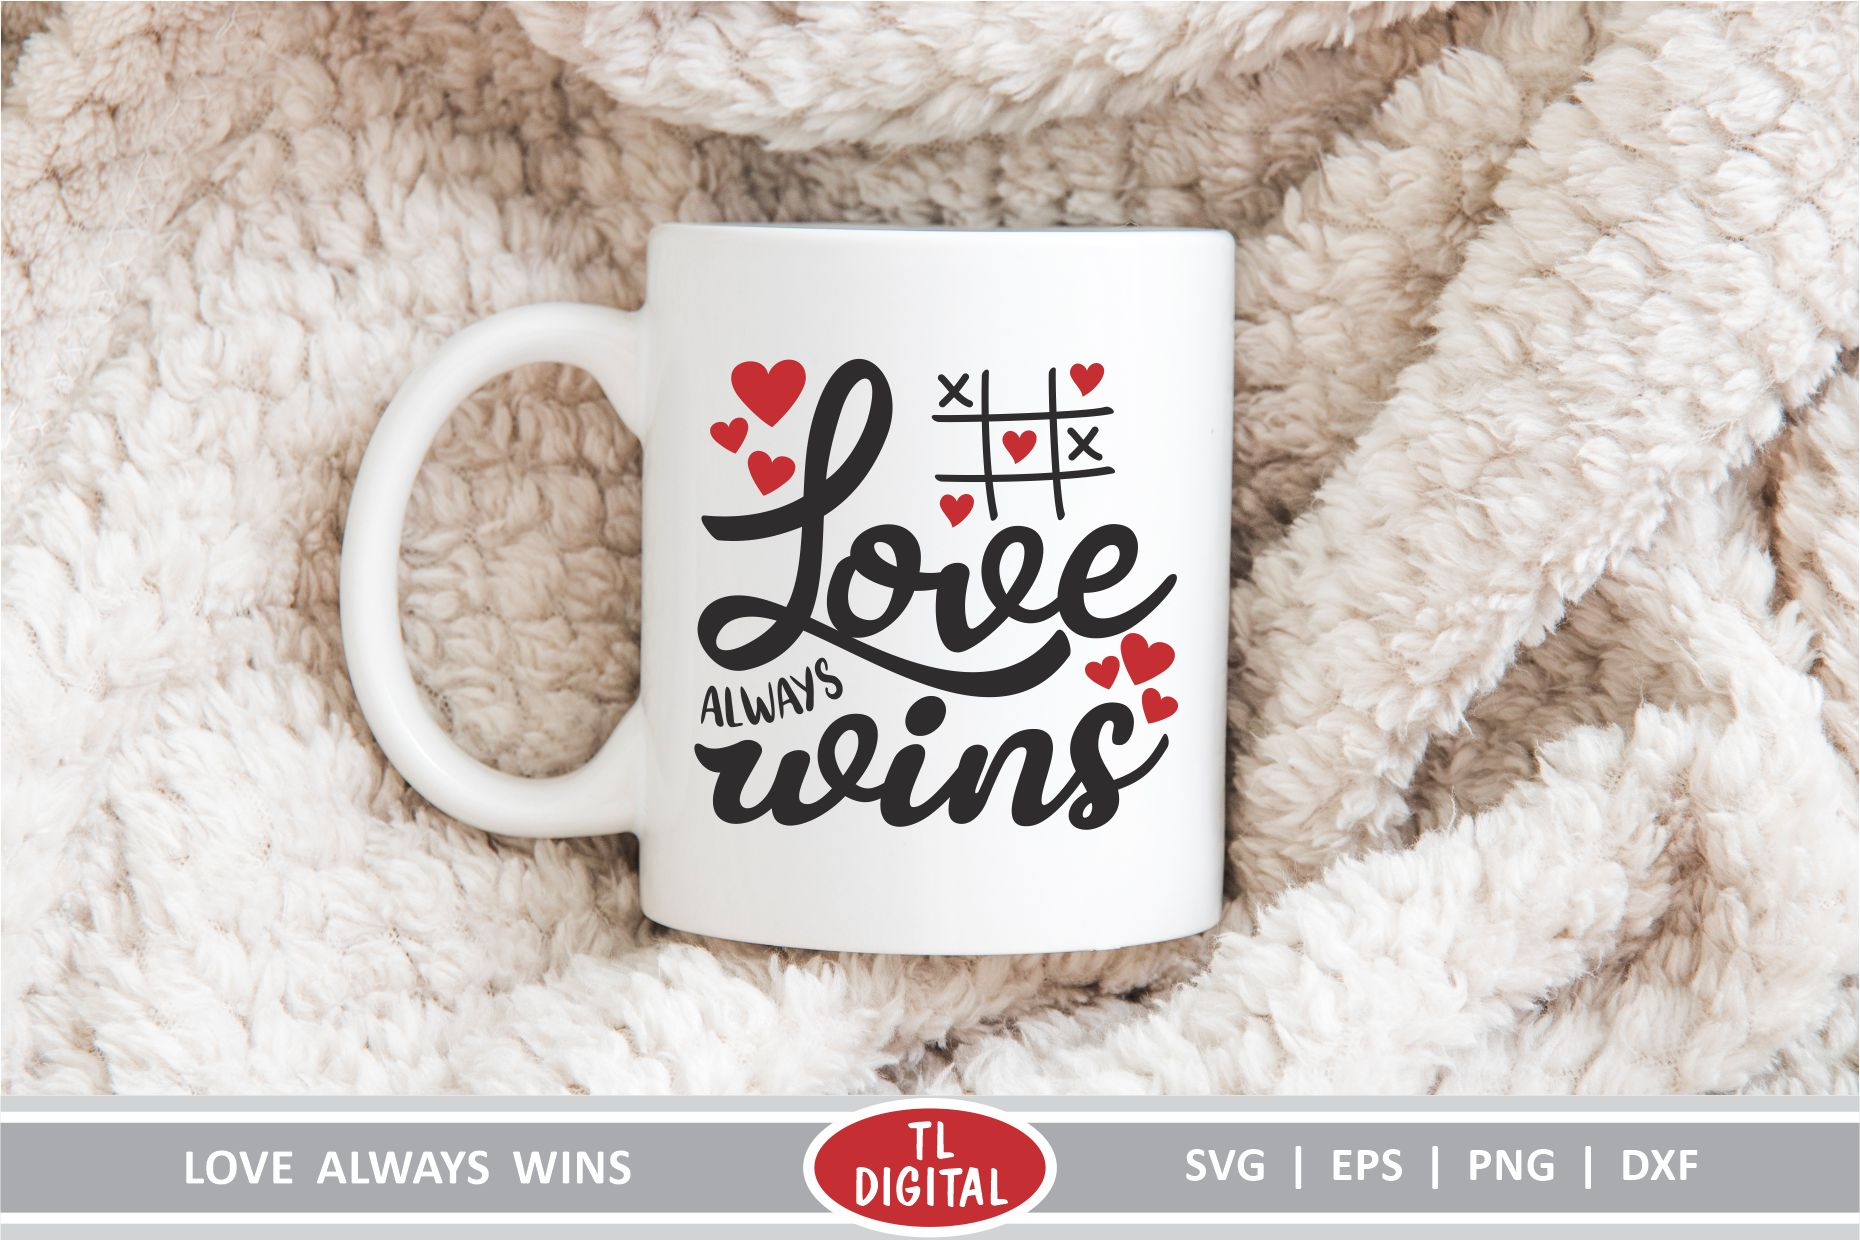 Love Always Wins - SVG   EPS   PNG  DXF - Valentines Graphic example image 2